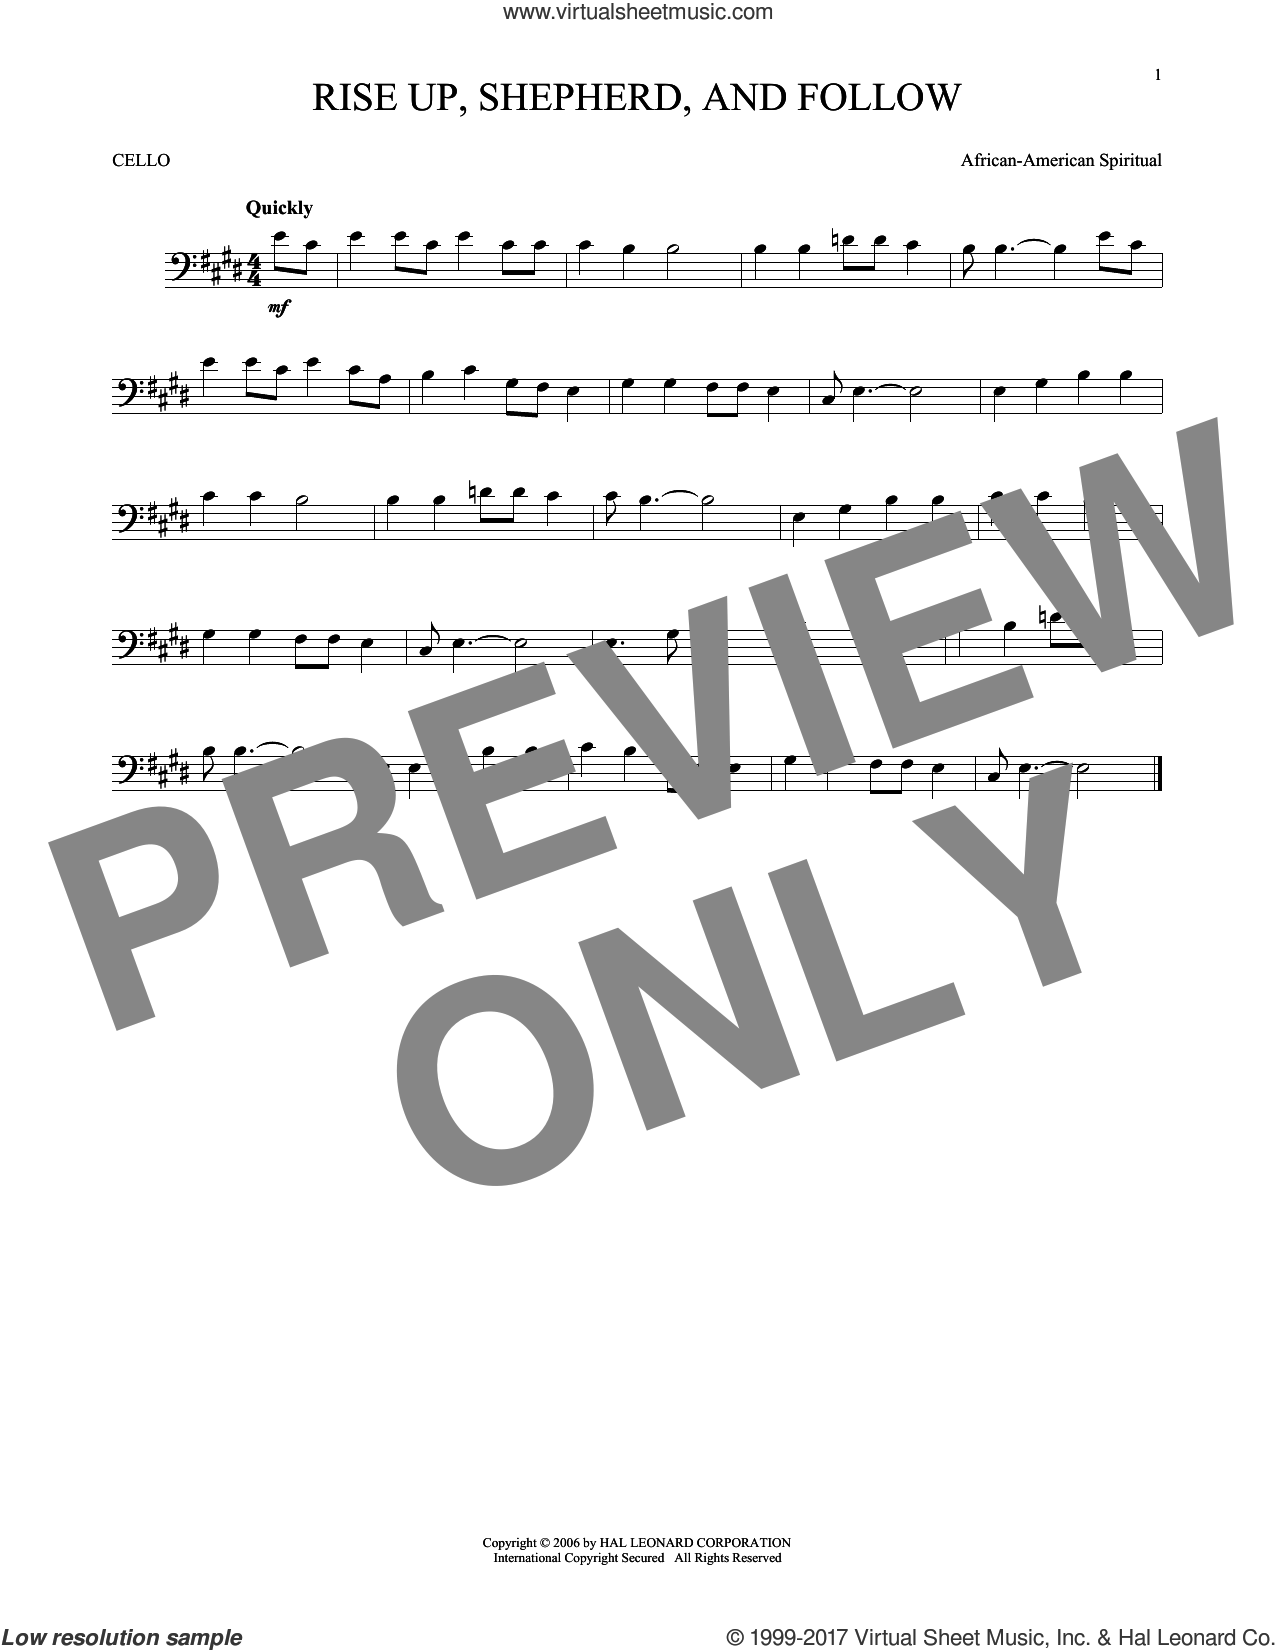 Rise Up, Shepherd, And Follow sheet music for cello solo. Score Image Preview.